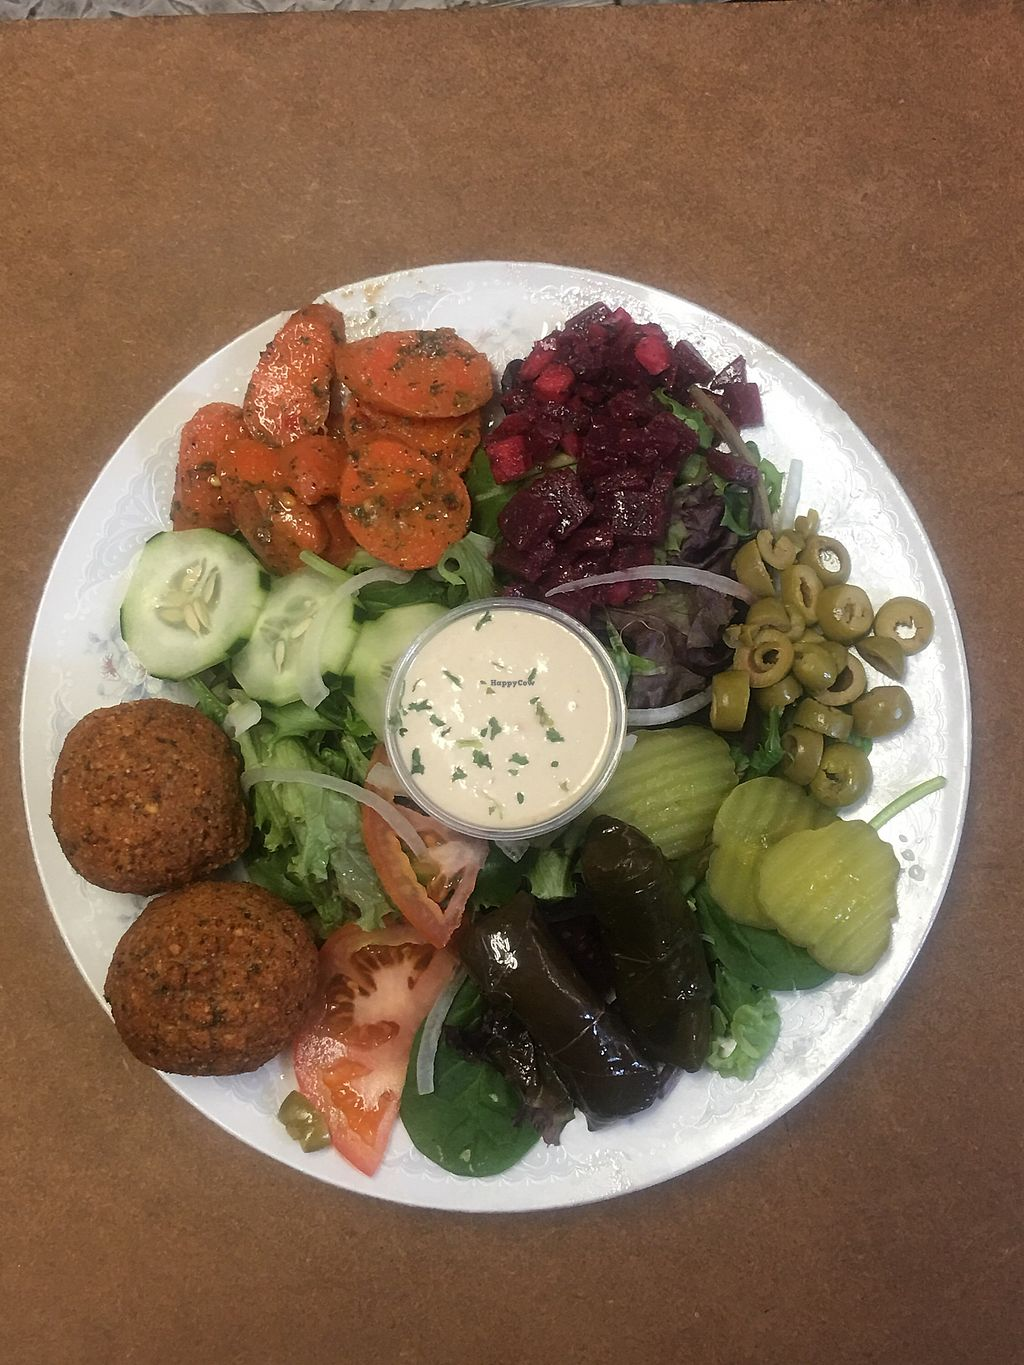 """Photo of Taste of Casablanca  by <a href=""""/members/profile/PlantBasedRN"""">PlantBasedRN</a> <br/>Falafel Salad <br/> April 3, 2018  - <a href='/contact/abuse/image/115146/380322'>Report</a>"""